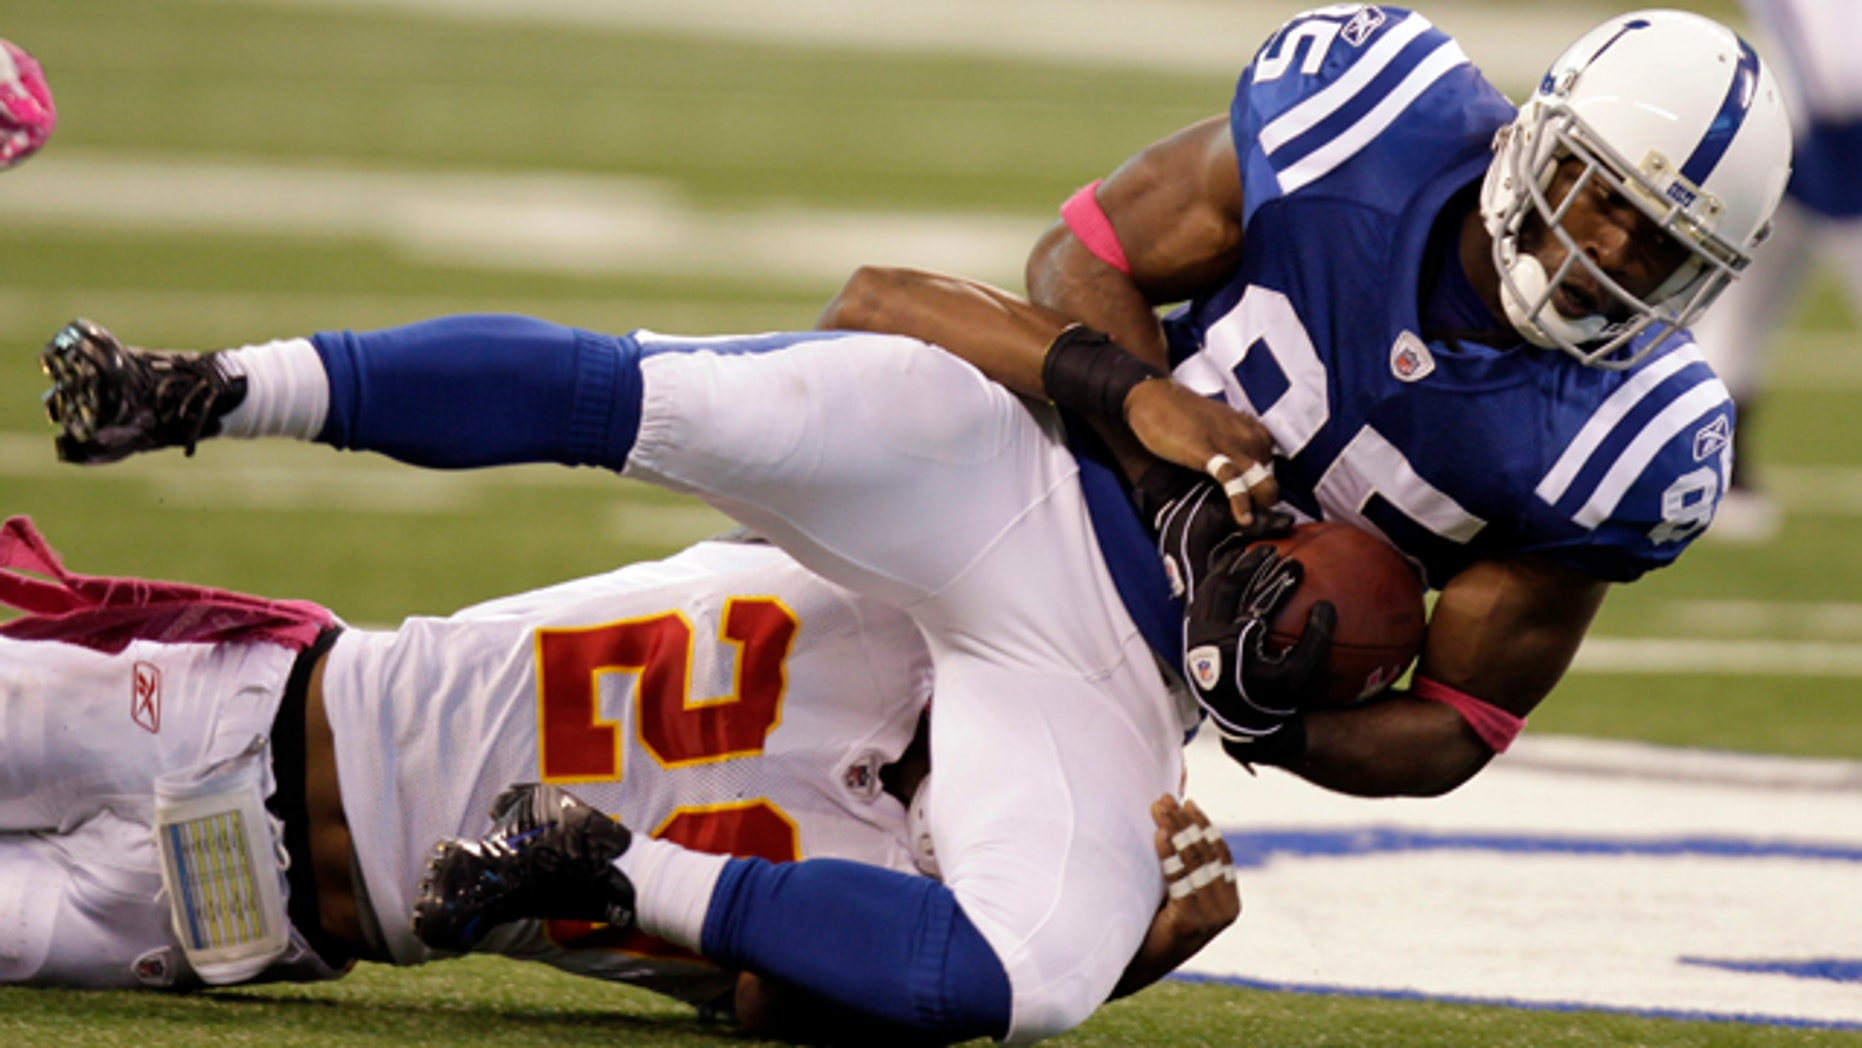 Oct. 10: Indianapolis Colts wide receiver Pierre Garcon, right, is tackled by Kansas City Chiefs defensive back Eric Berry during the second half of an NFL football game in Indianapolis.